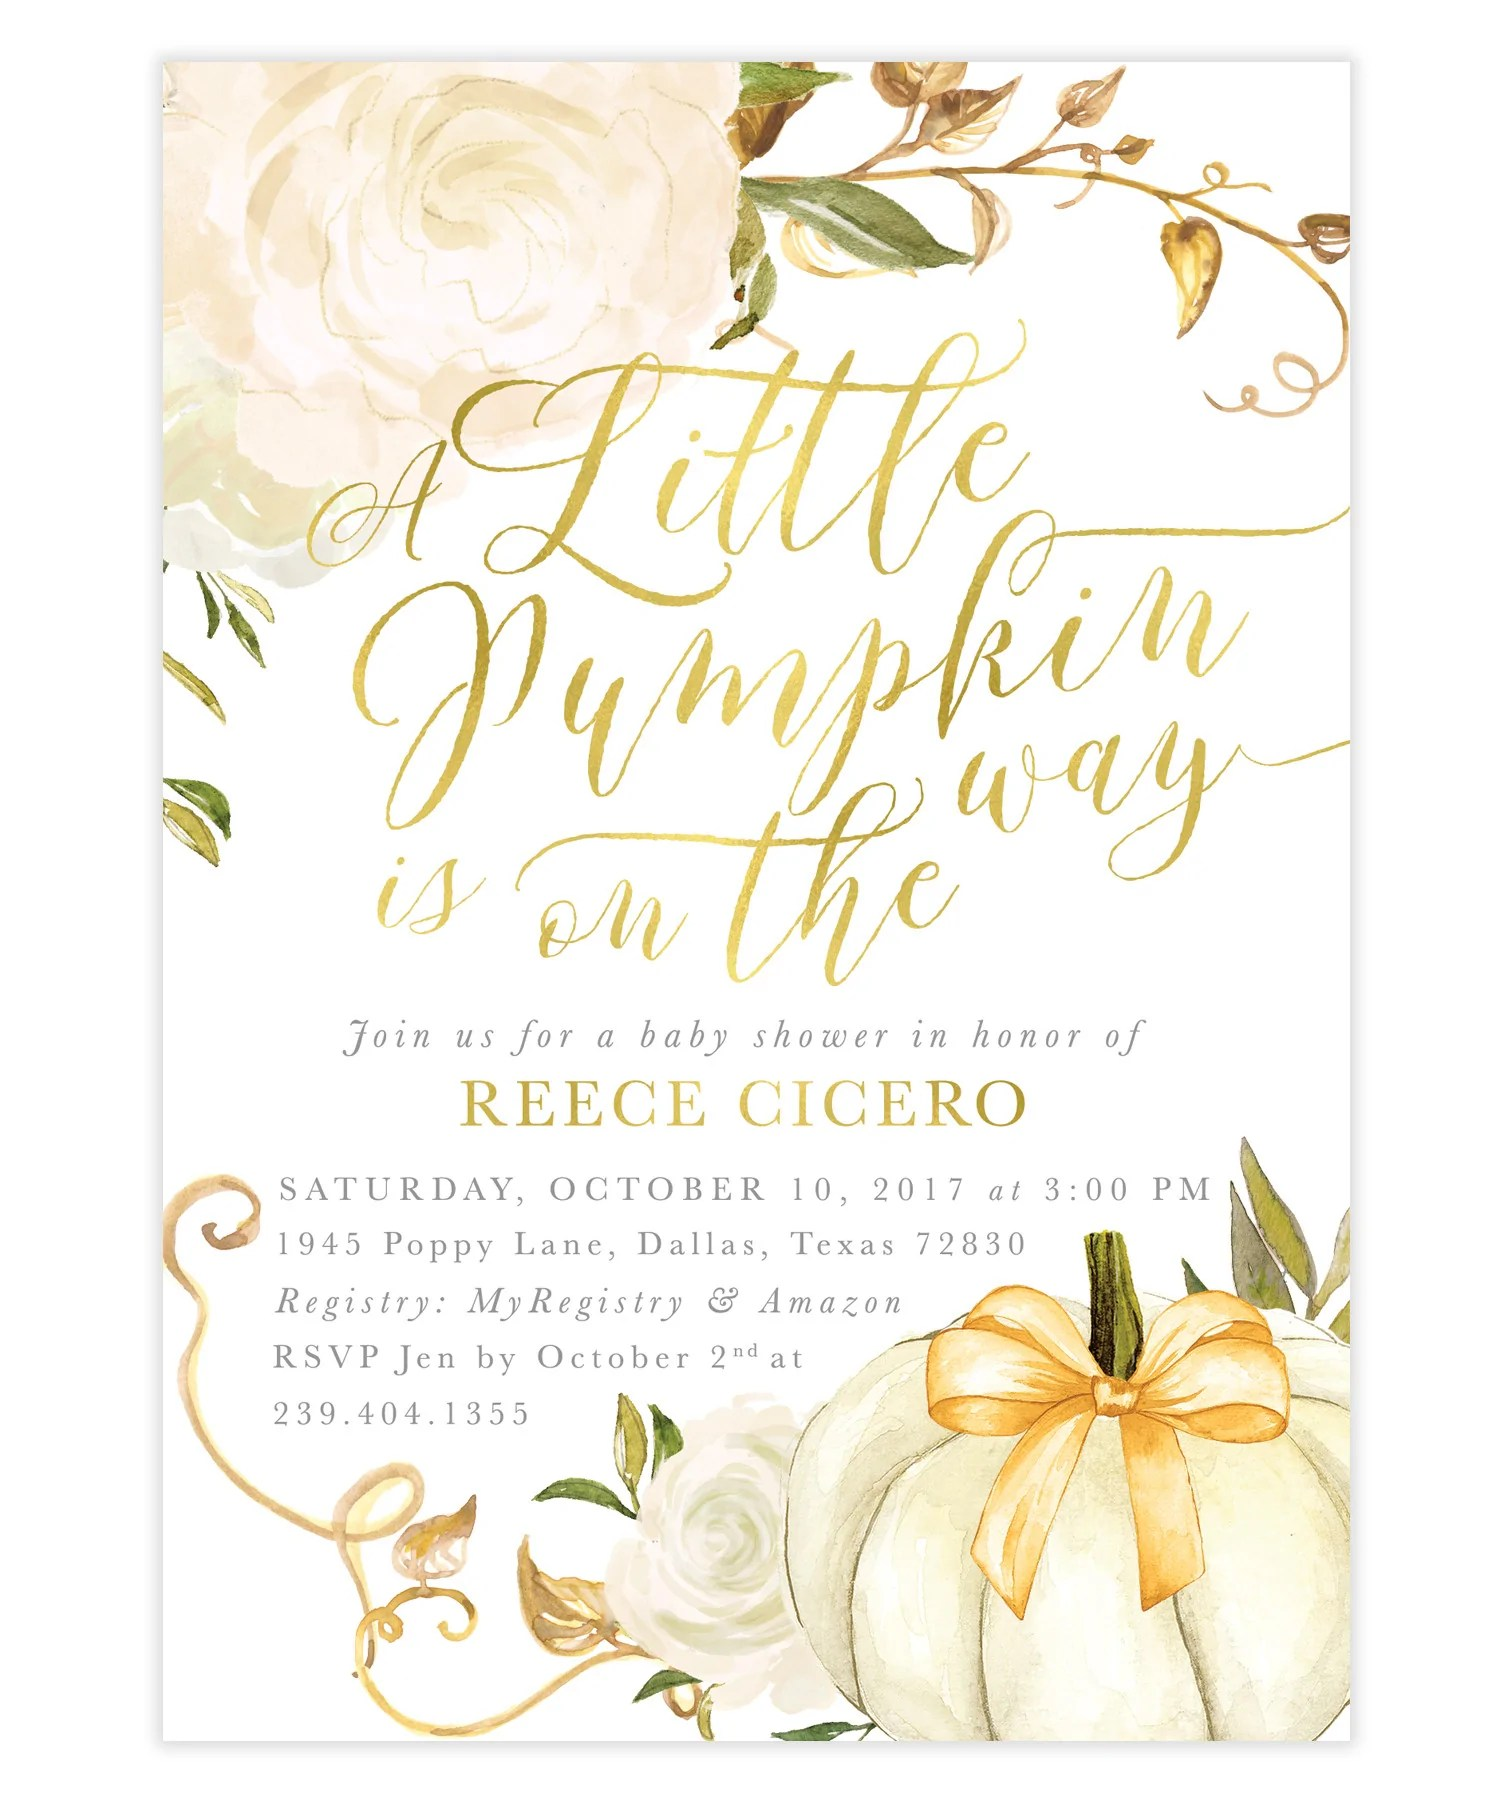 Startling Fall Is On Roses Baby Shower Invitation A Little Pumpkin Is On Fall Baby Shower Invitation Rose Baby On Way Cards Baby On Way Wishes inspiration Baby On The Way